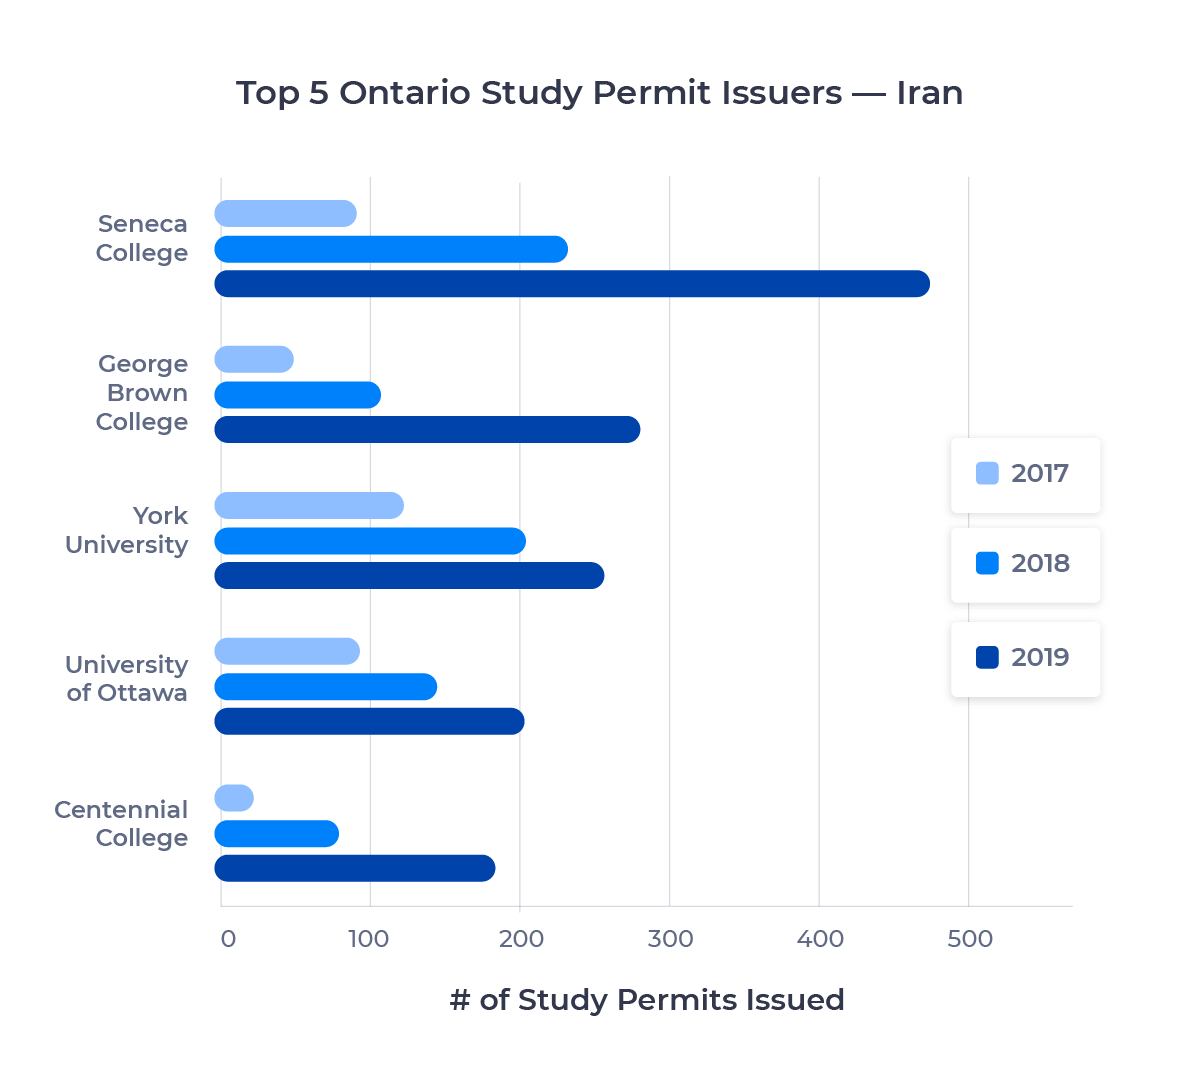 Bar chart showing the top five schools in Ontario for Iranian students by study permits issued. Described in detail below.